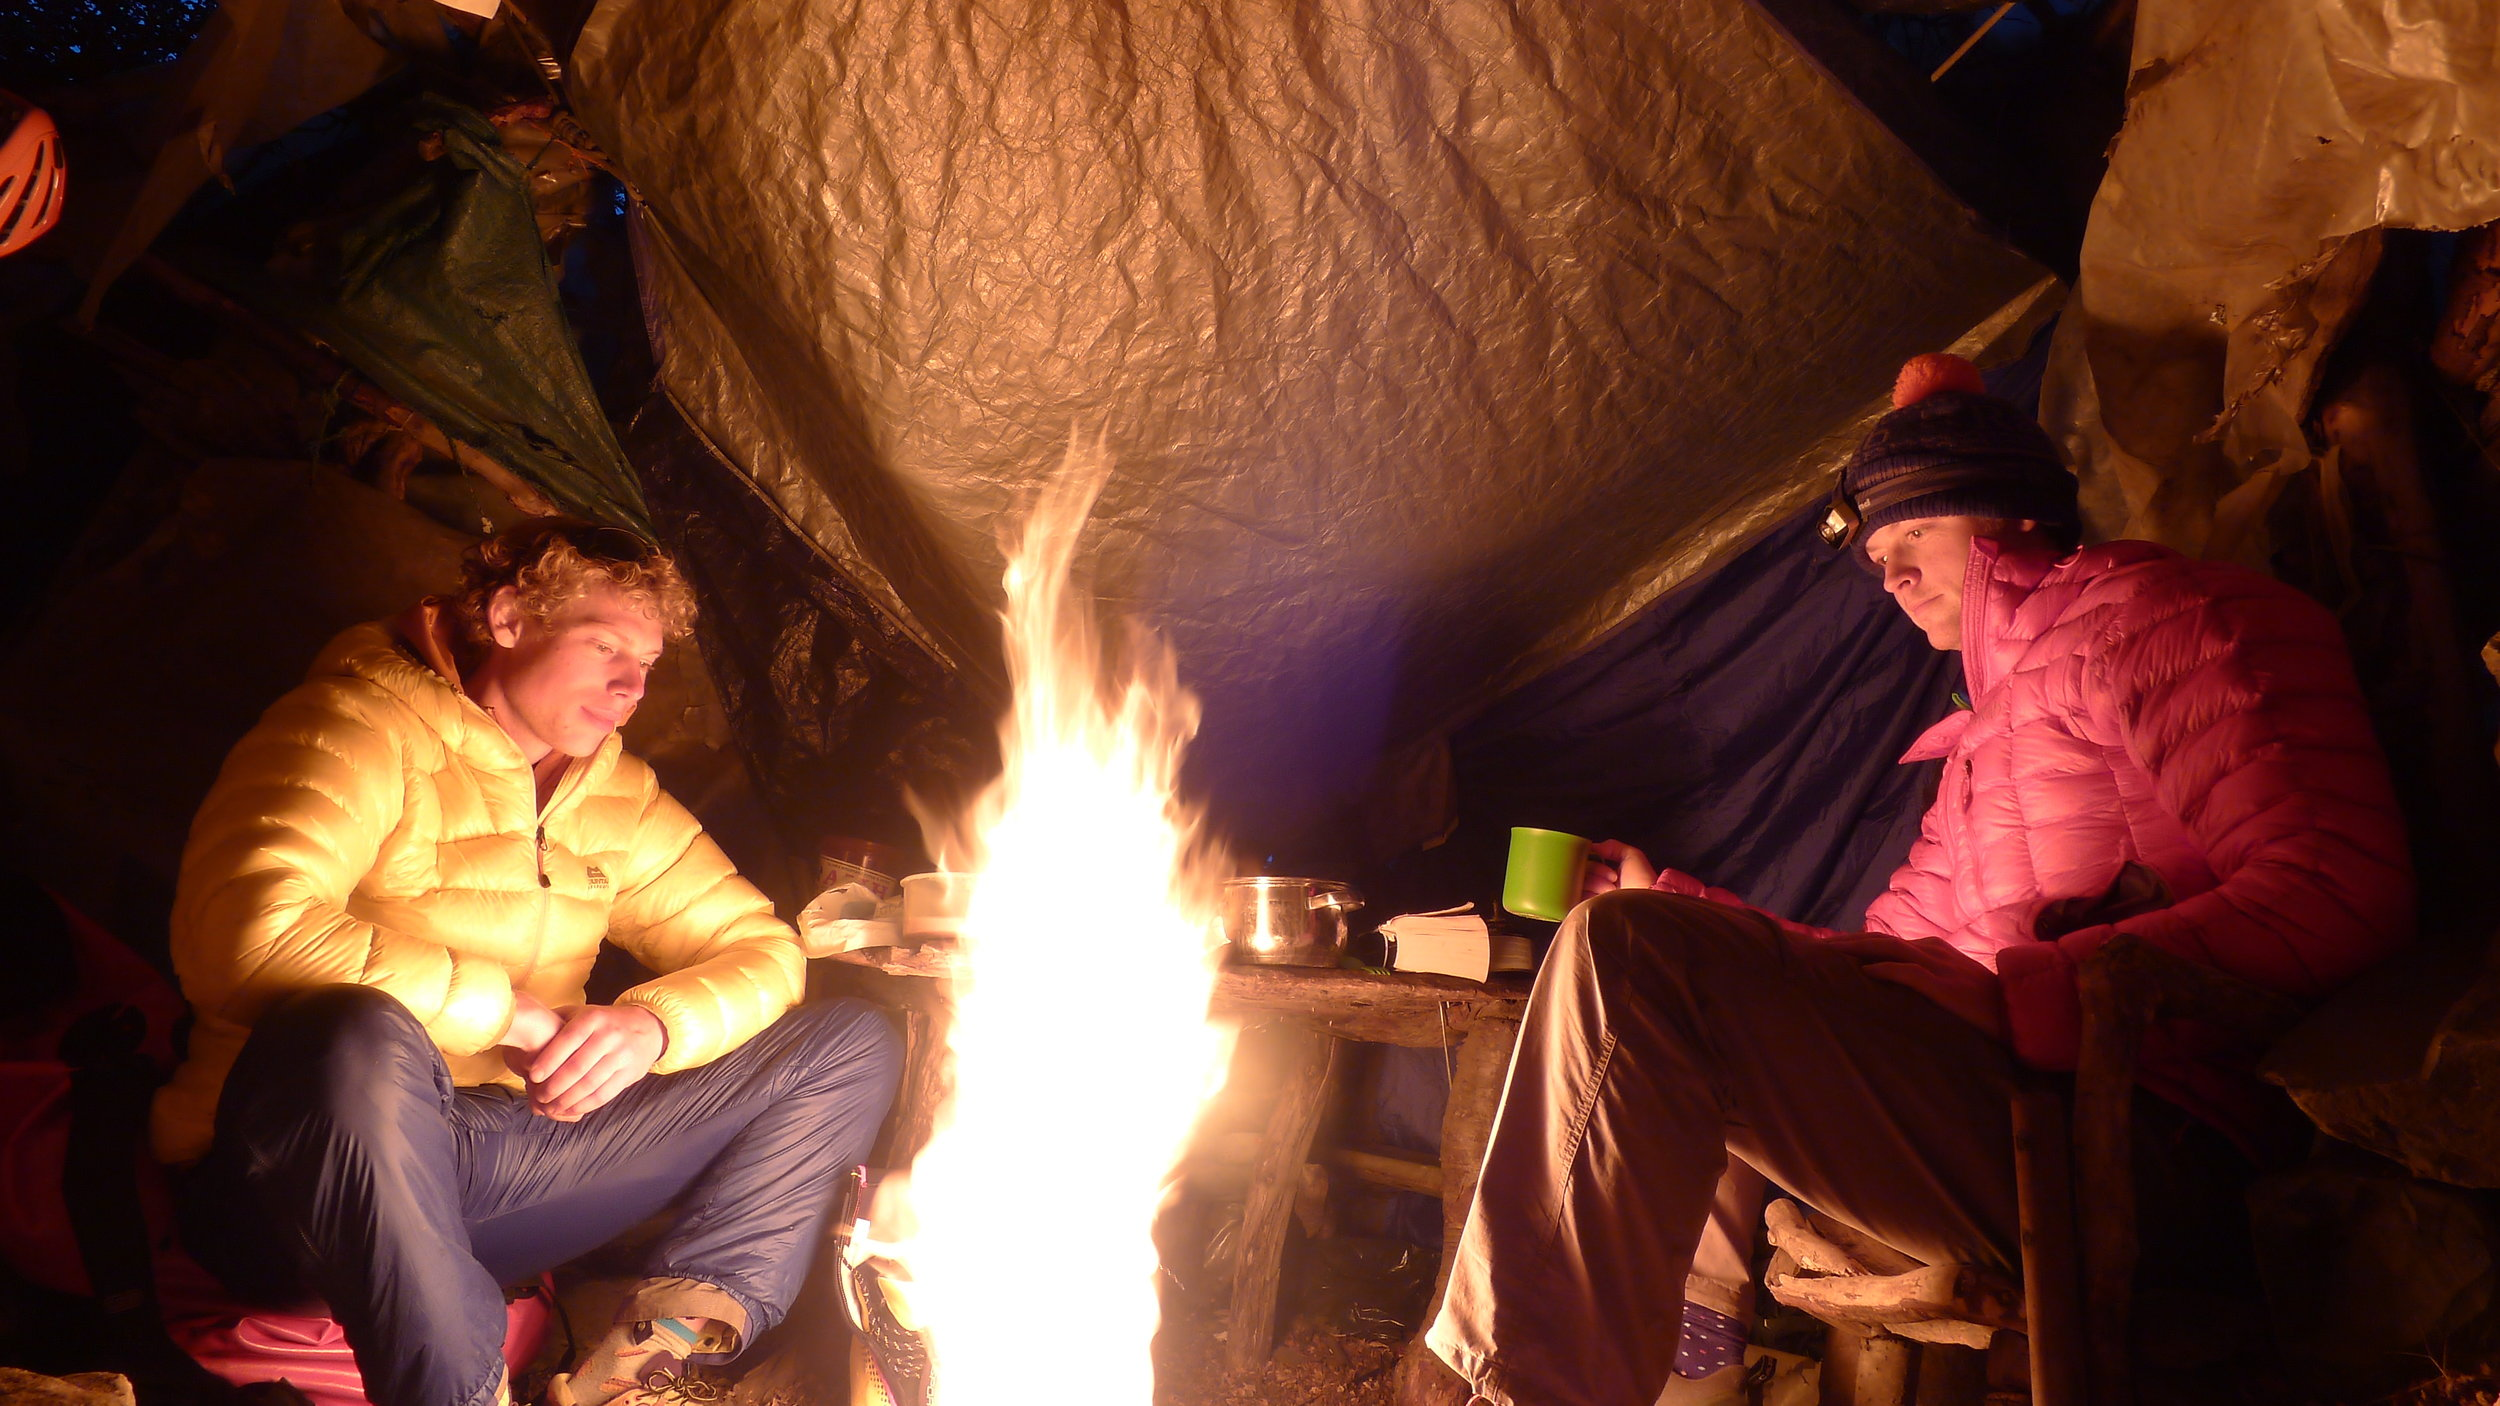 Calum and I look into the warmth of our MSR Whisperlite stove in the 'Trash Shack' - our Base Camp in Torres Del Paine, Chile. It wasn't the best way to cook, but it sure kept us warm!